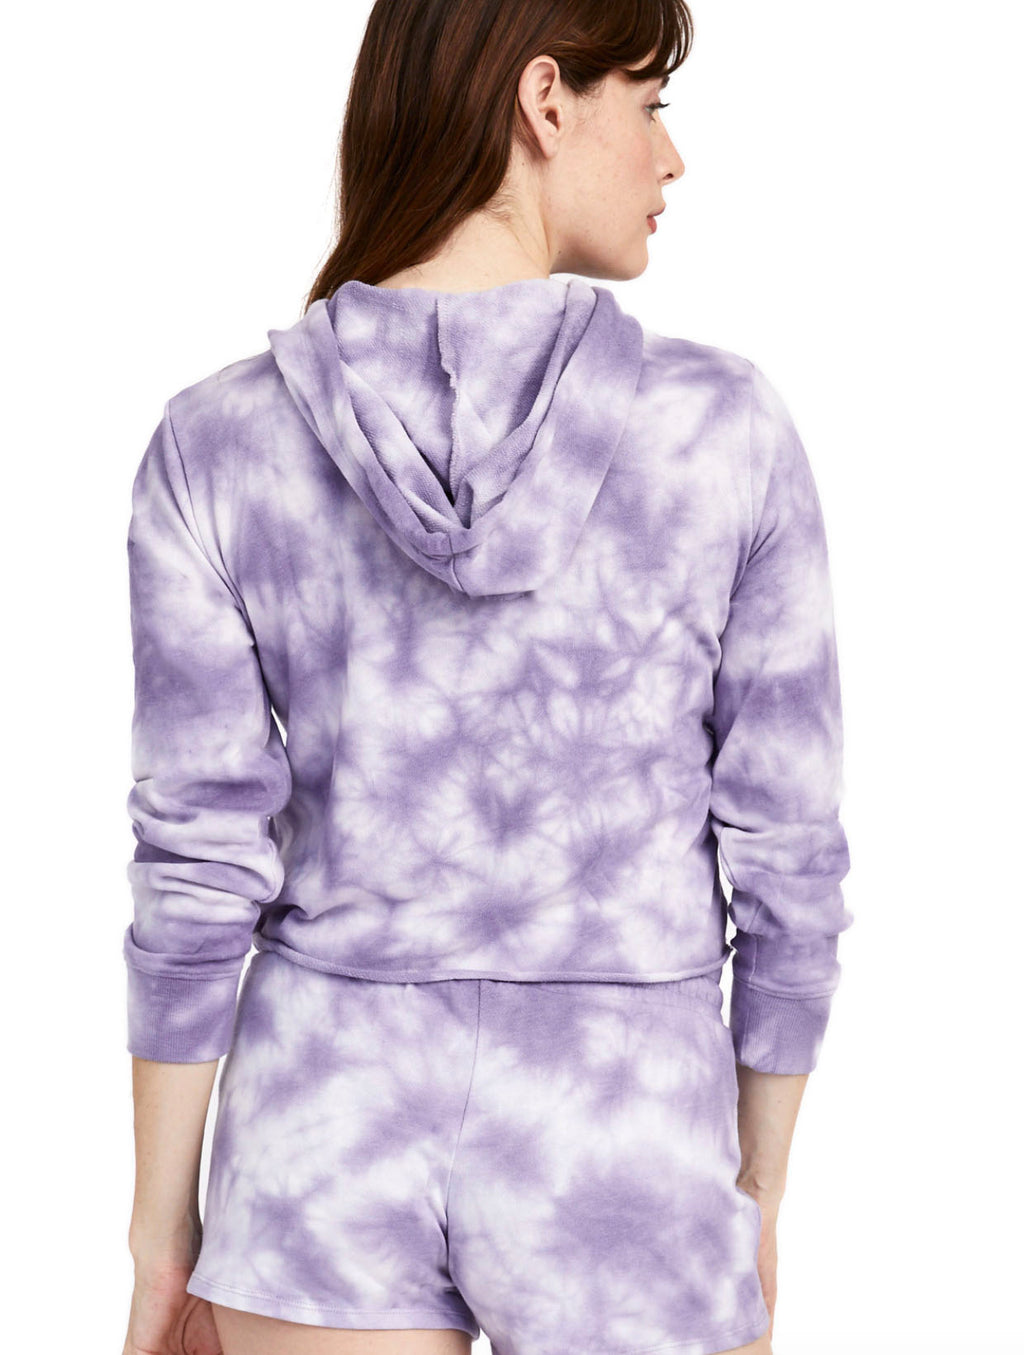 Alternative Apparel Cropped Hoodie in Purple Tie Dye